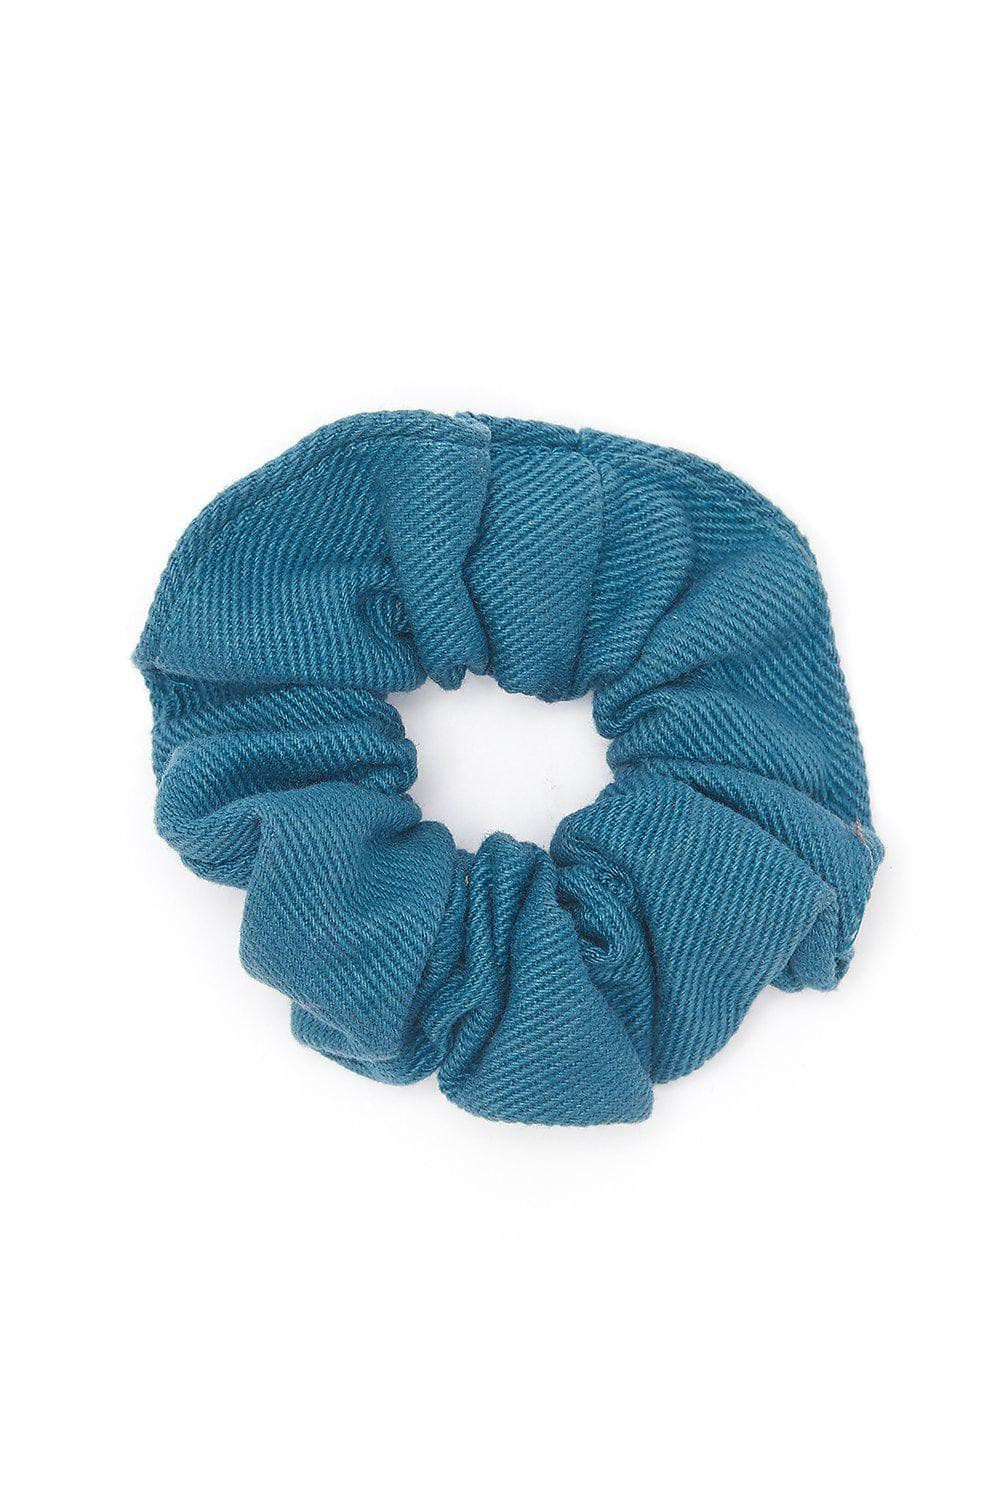 Lucy & Yak accessories 'Carter' Hair Scrunchie In Petrol Blue Cotton